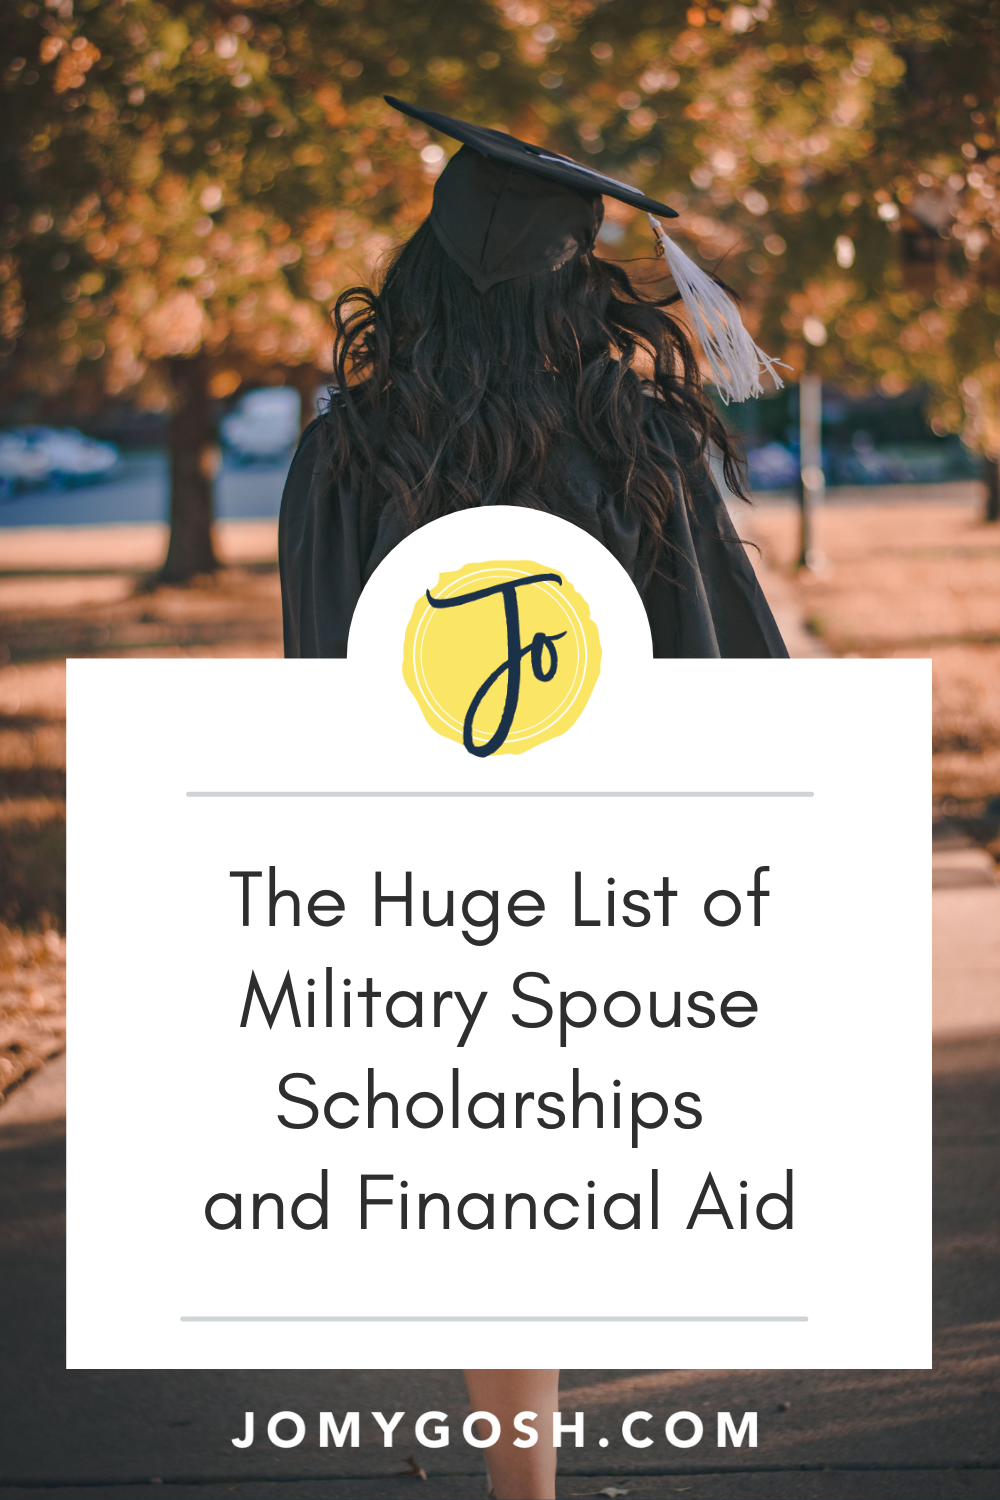 Heading to school? Make sure you check through these scholarship and grant opportunities for military spouses!  #militaryspouse #milspouse #financialaid #scholarship #grant #highereducation #milspouse #milspouses #milso #milsos #milspo #milspos #scholarships #savingmoney #budgeting #budget #freebies #savemoney